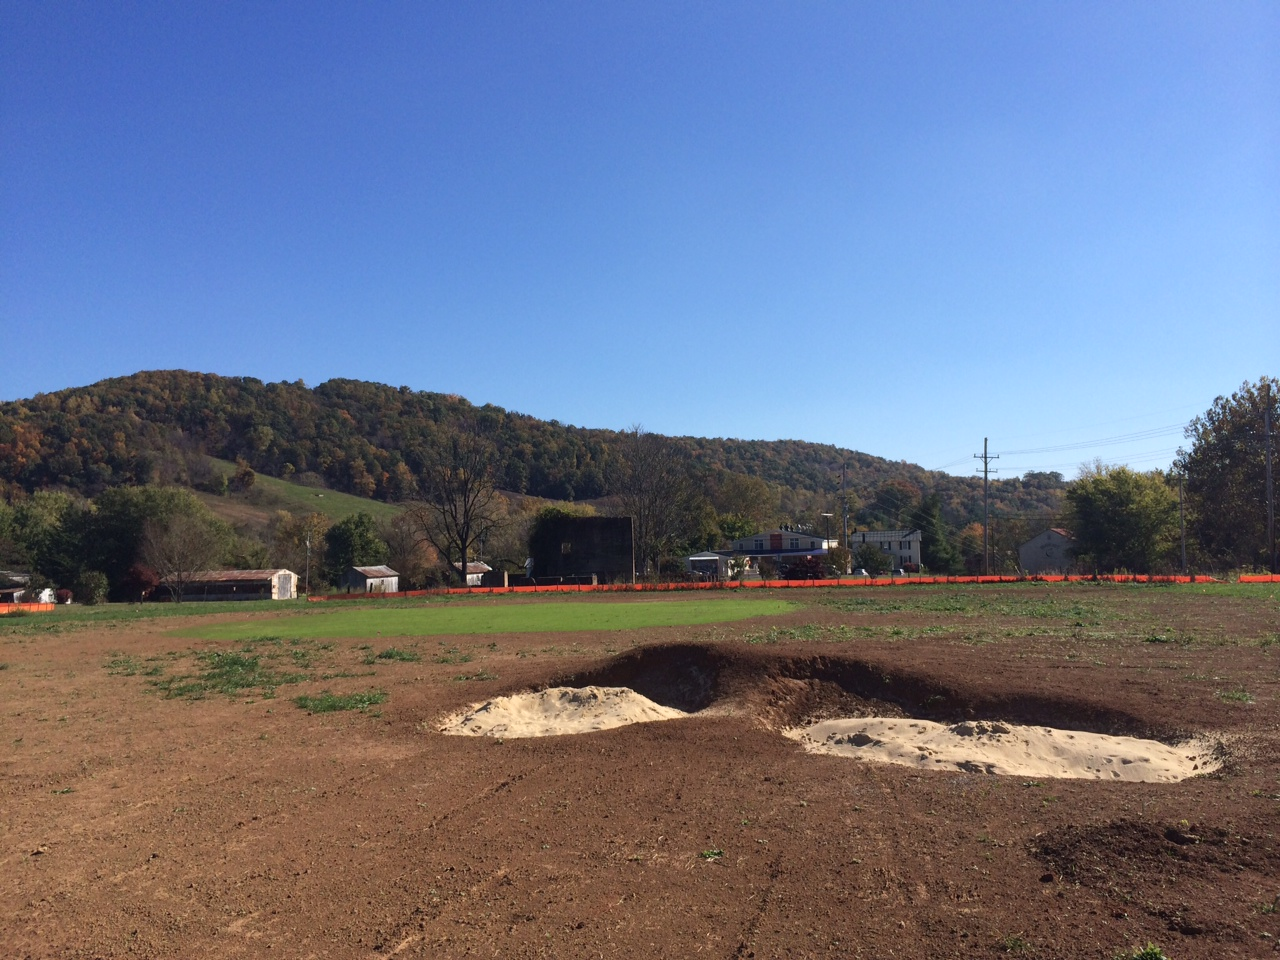 The 3rd hole is the only hole on which we did not have to strip the topsoil because we thought the existing contours only needed the slightest of changes. The slightly crowned fallaway green is much trickier than it appears. (Image: Mike McCartin)